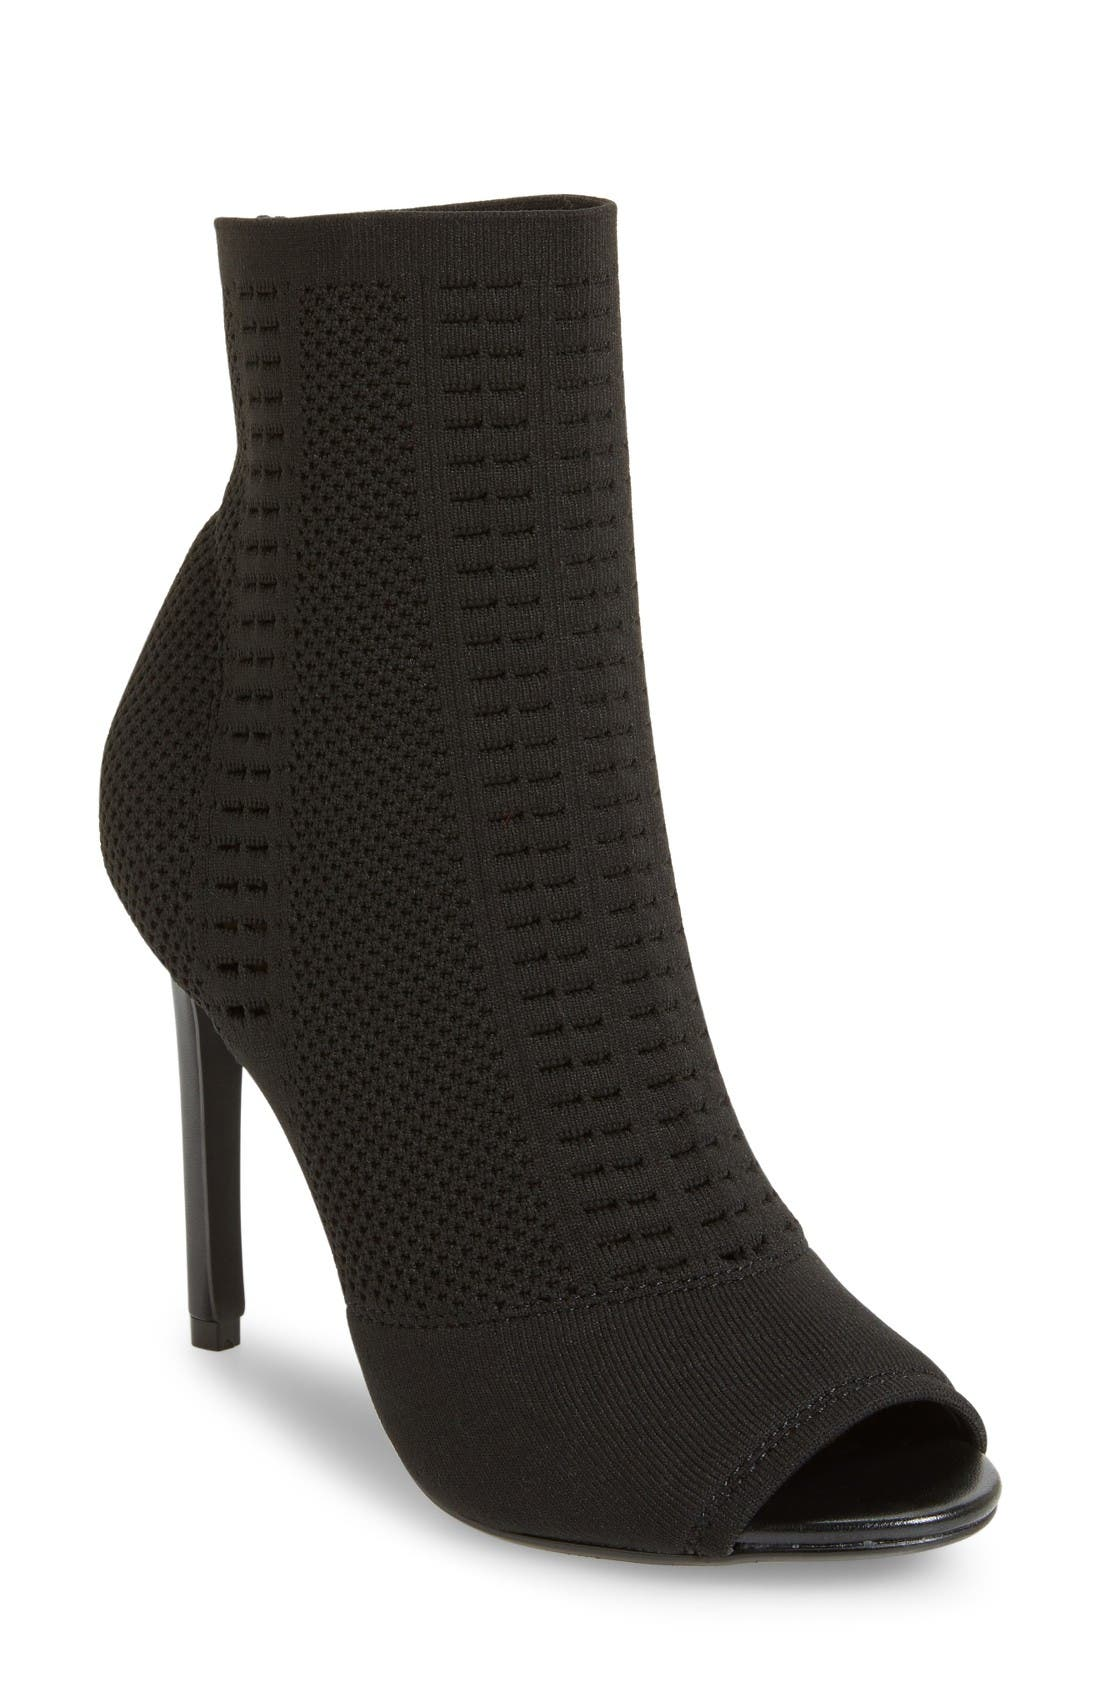 Main Image - Steve Madden Candid Knit Bootie (Women)